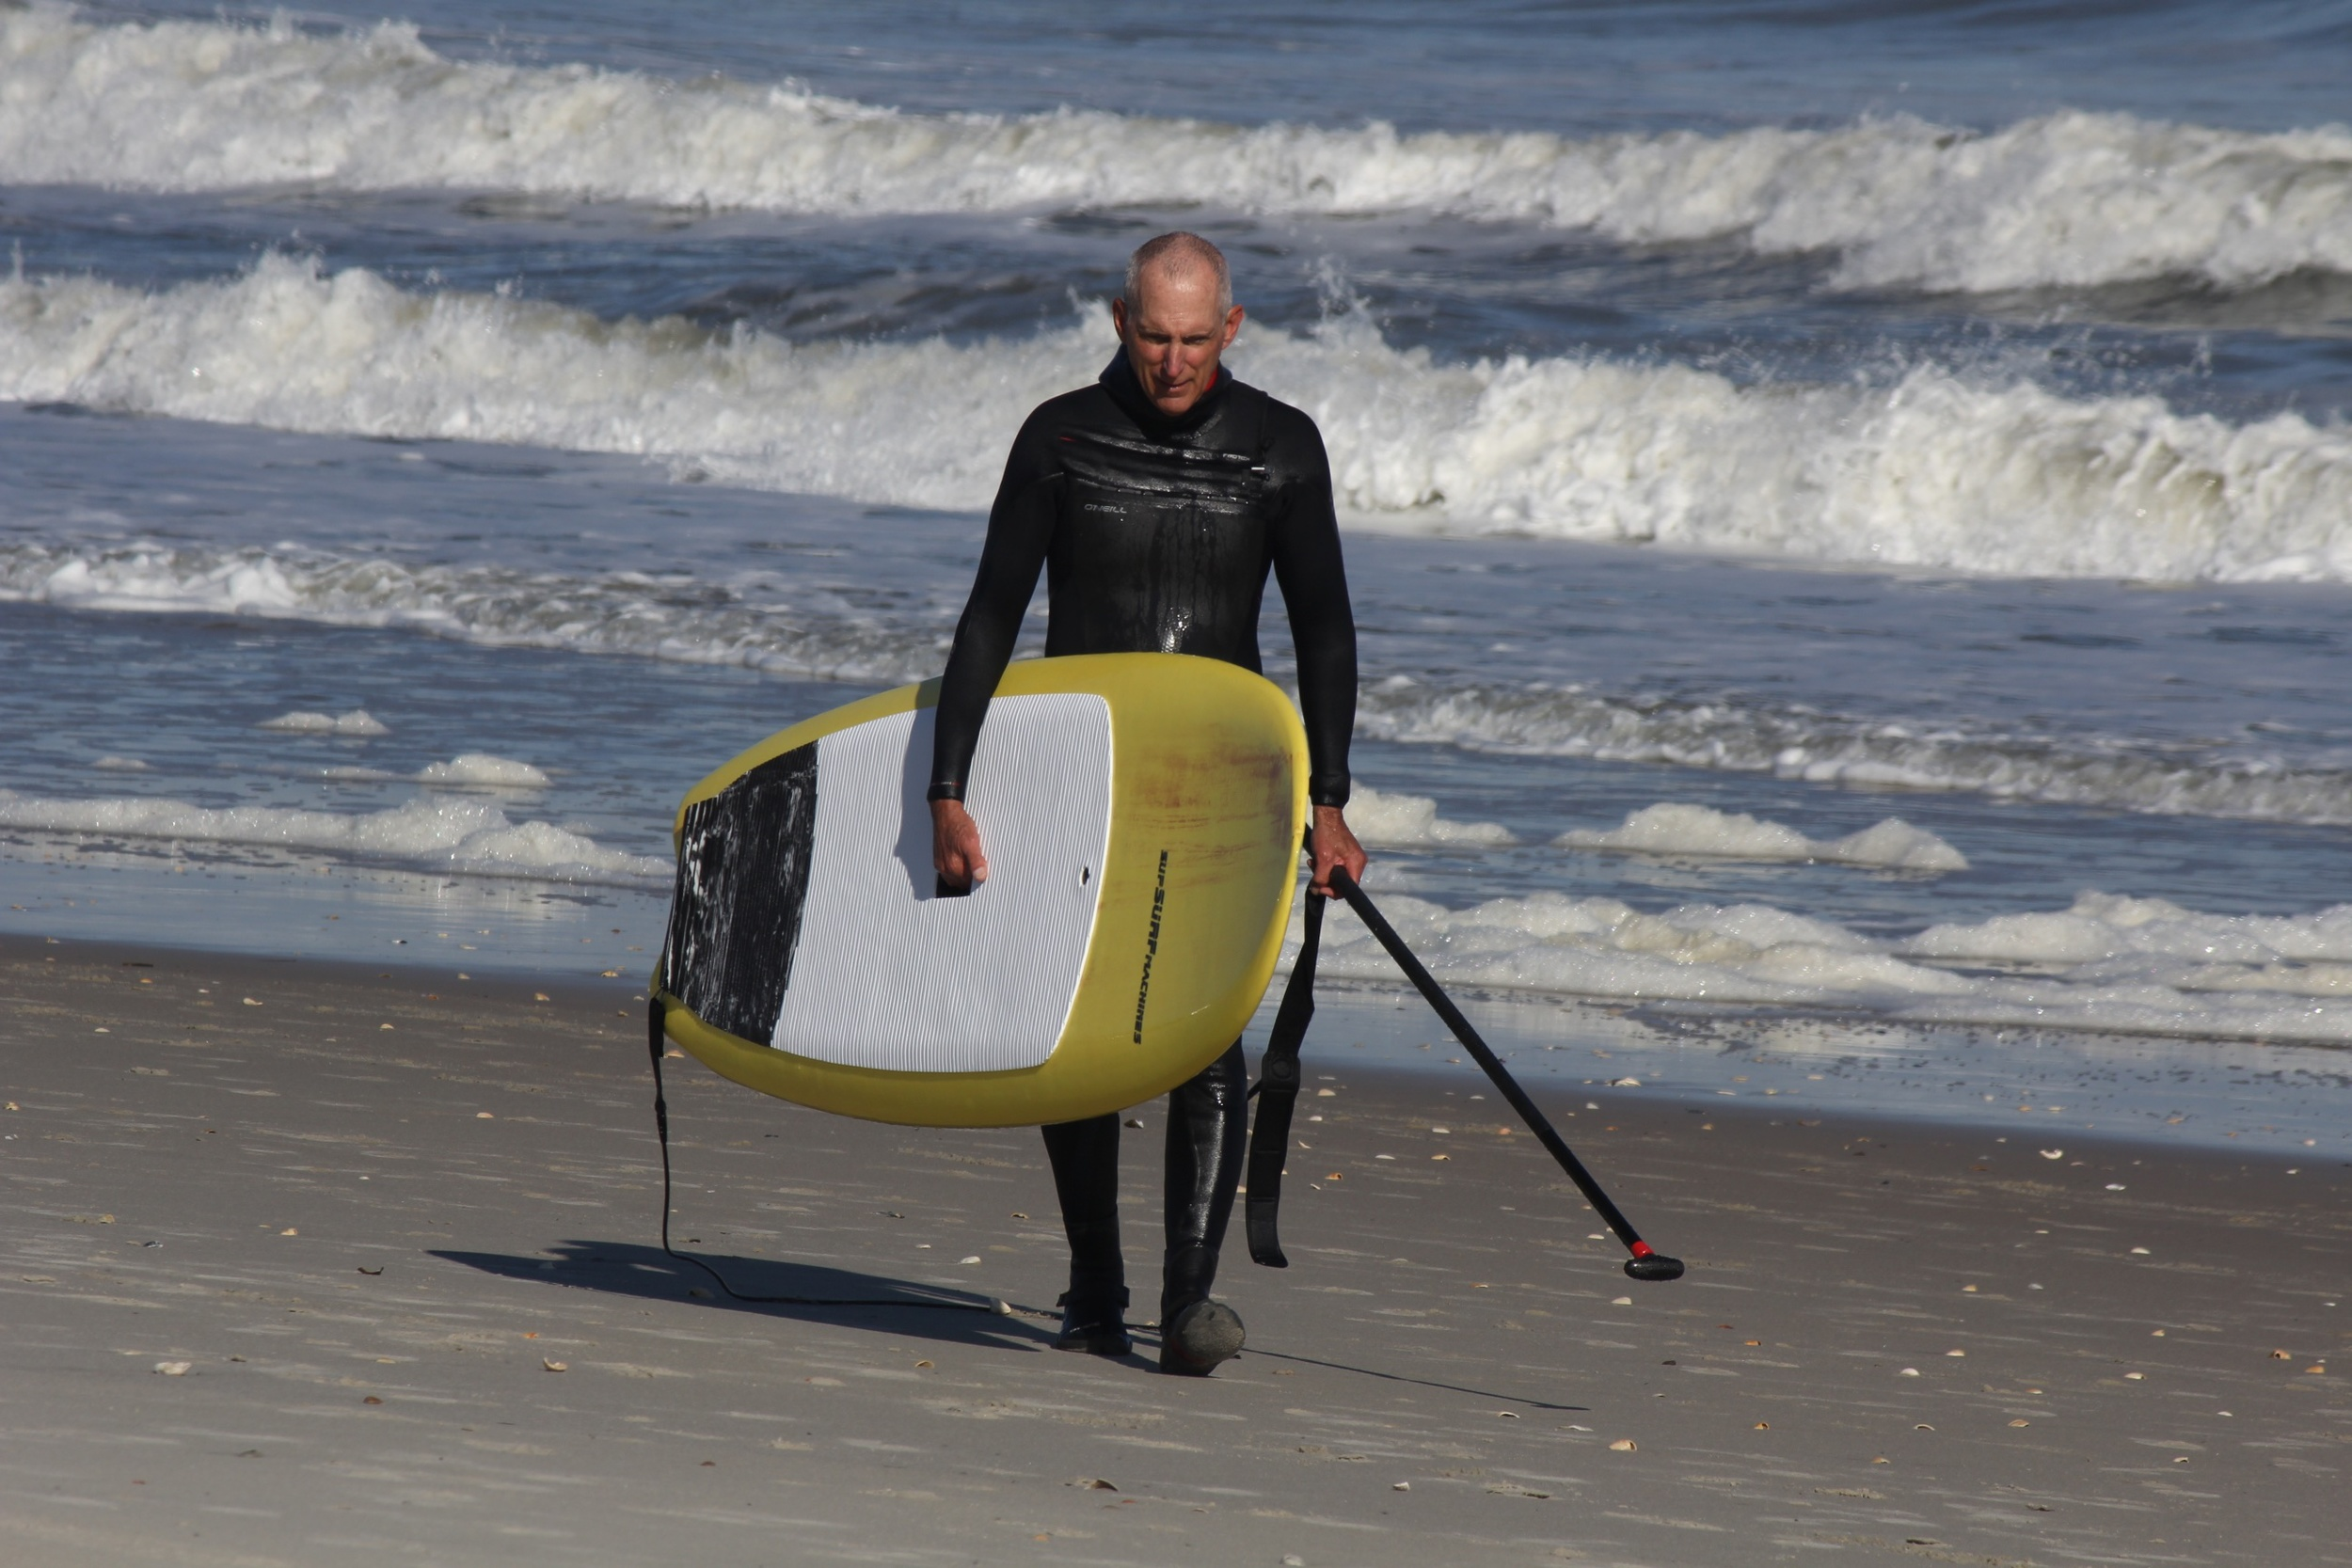 This is allyou get of me today. My surfing photos are not worthy. But, hey, the Tomo style held on and felt good today.